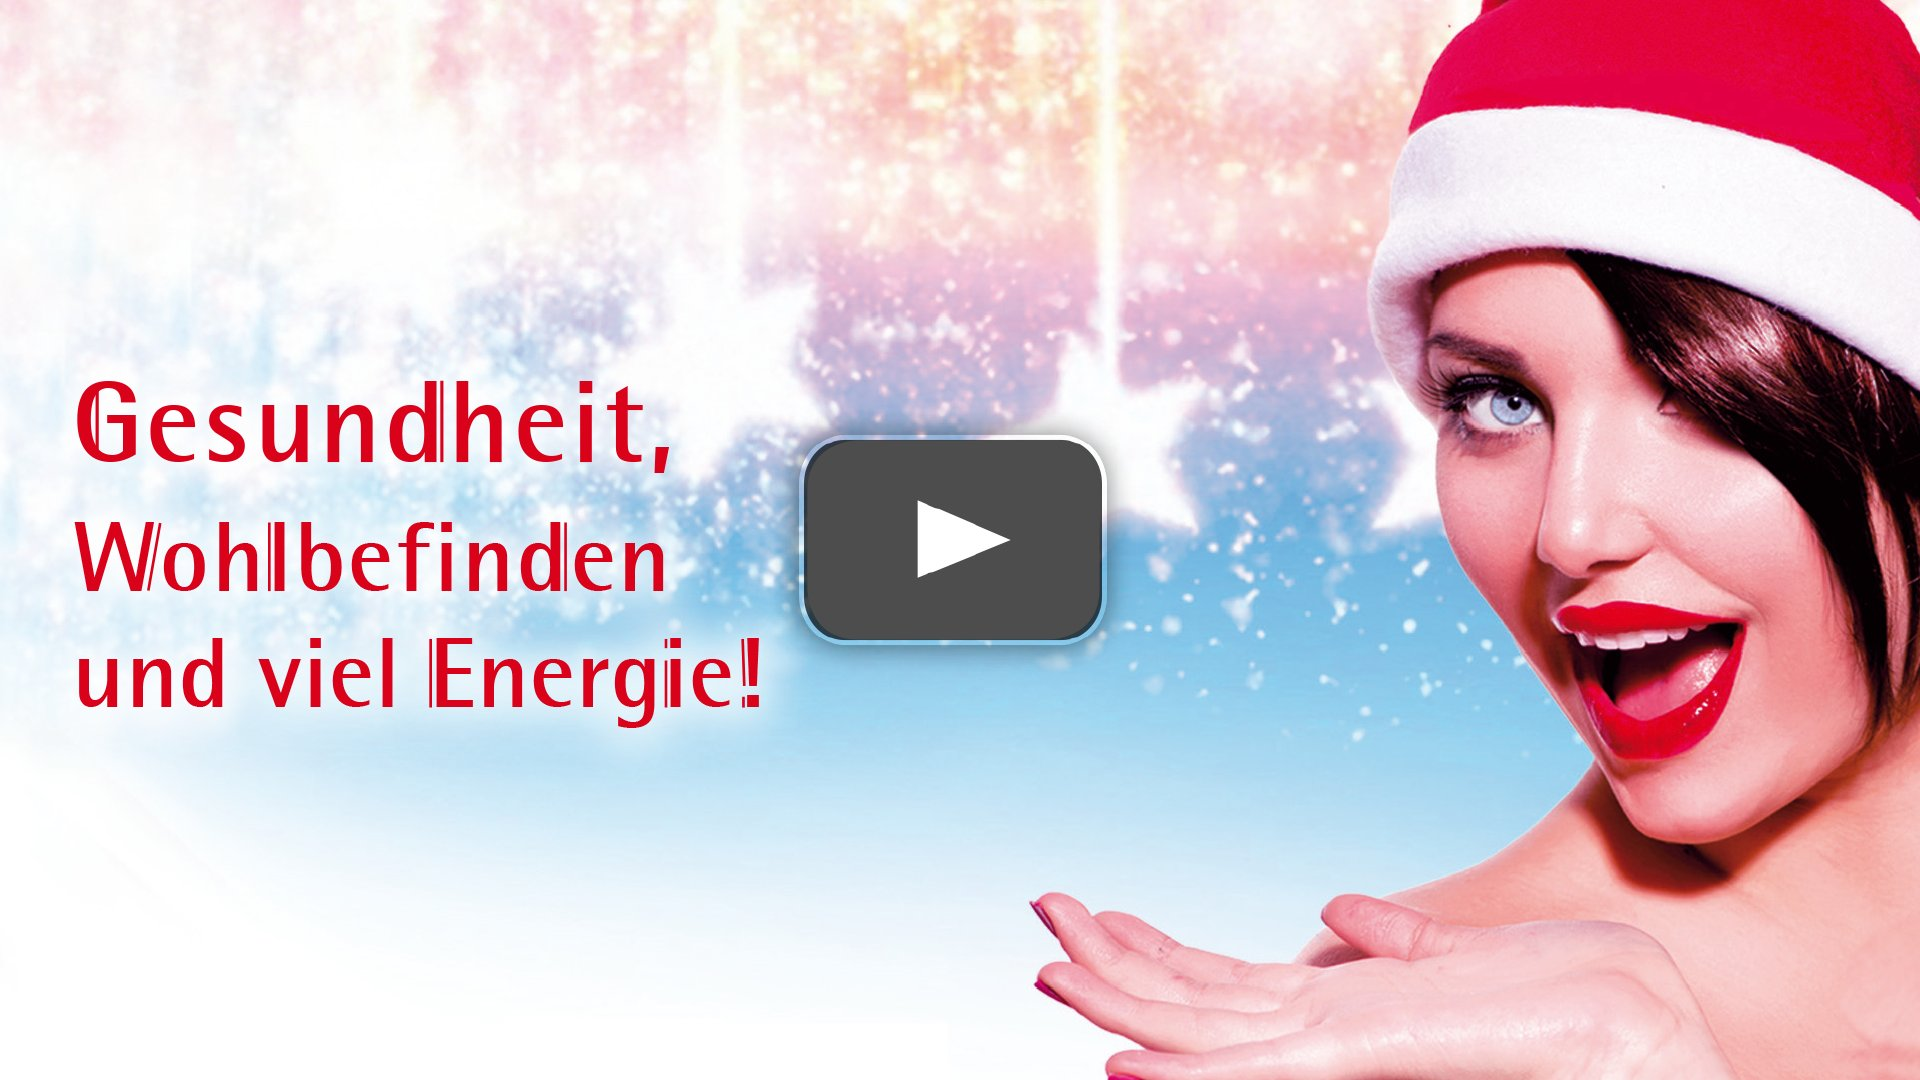 FIVE_Video-Startbild_Weihnachten_2019